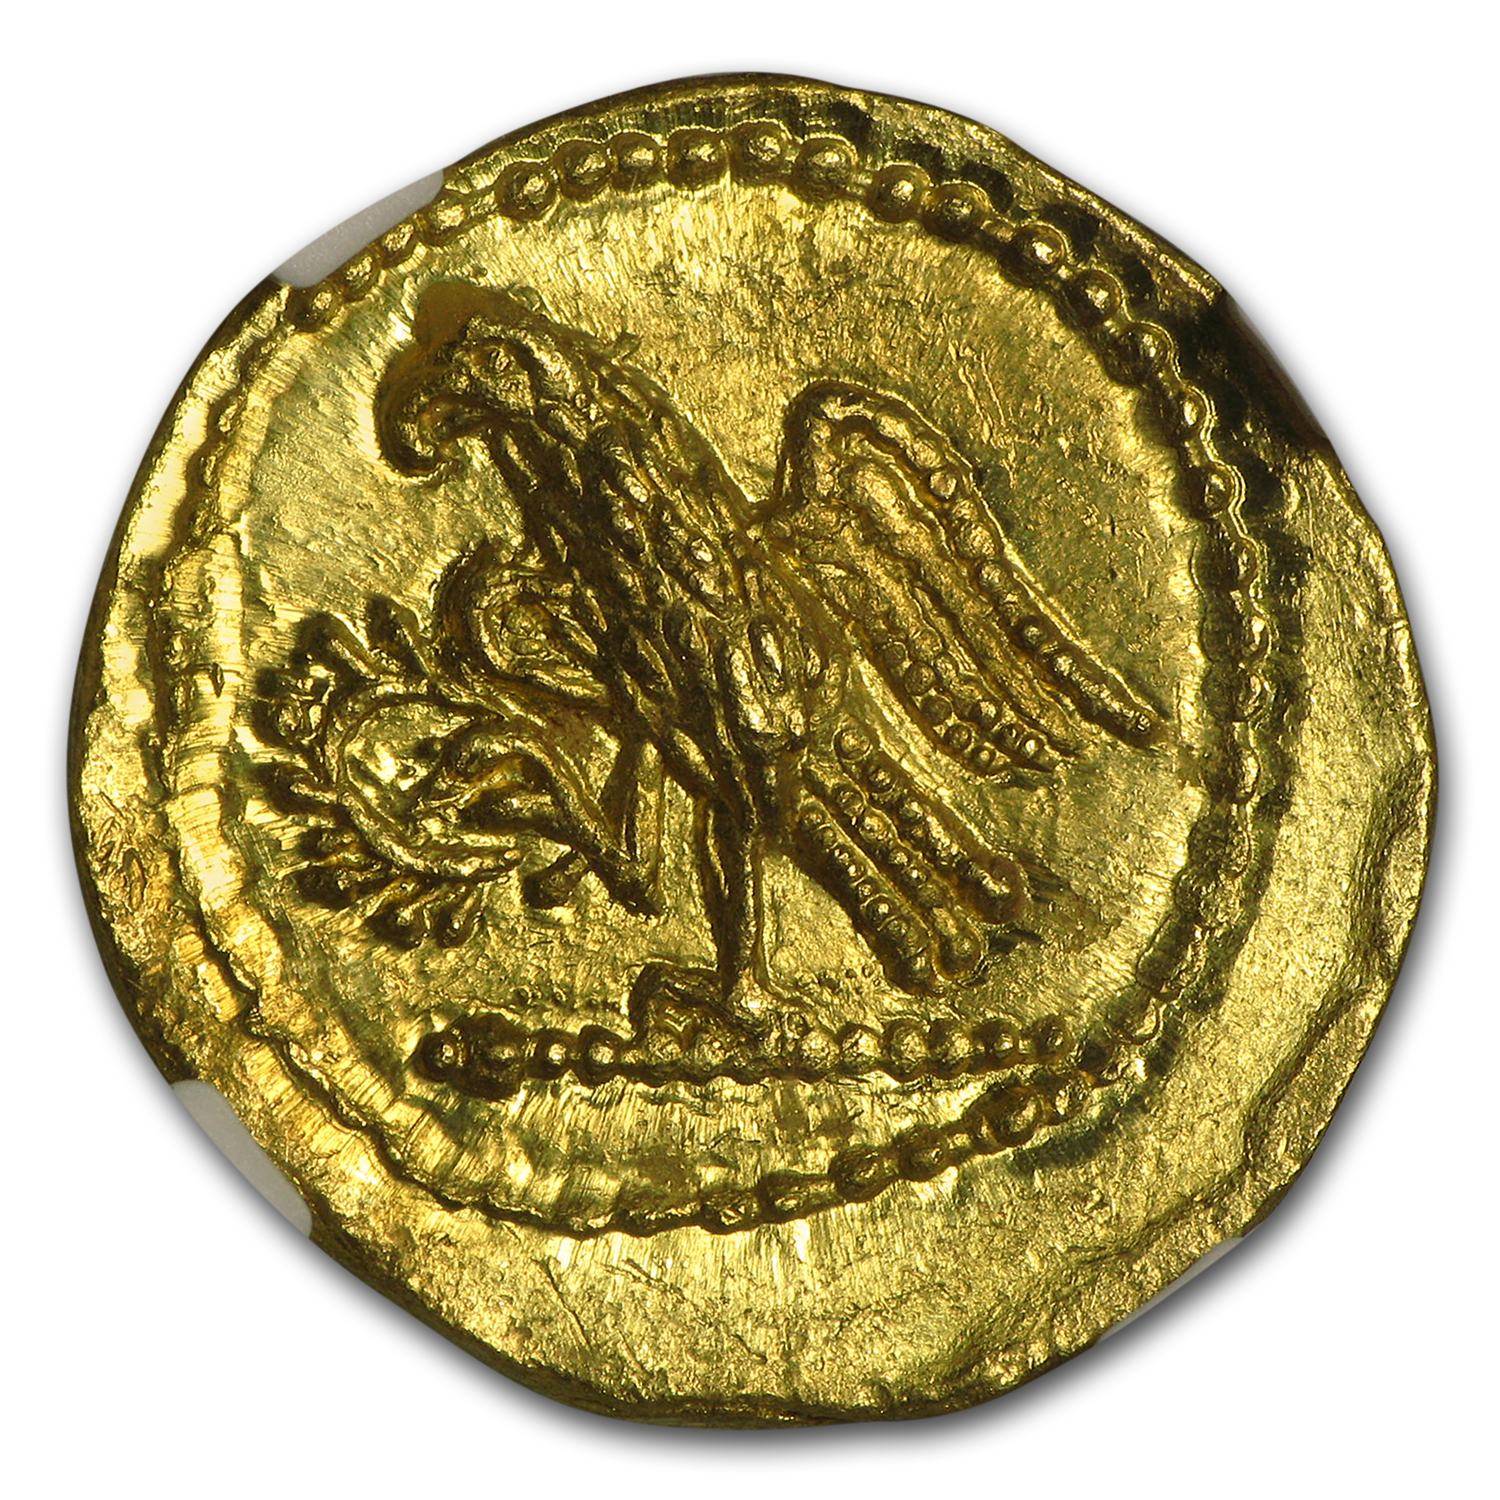 Thracian/Scythian Gold Stater w/Monogram (1st Century BC) MS NGC